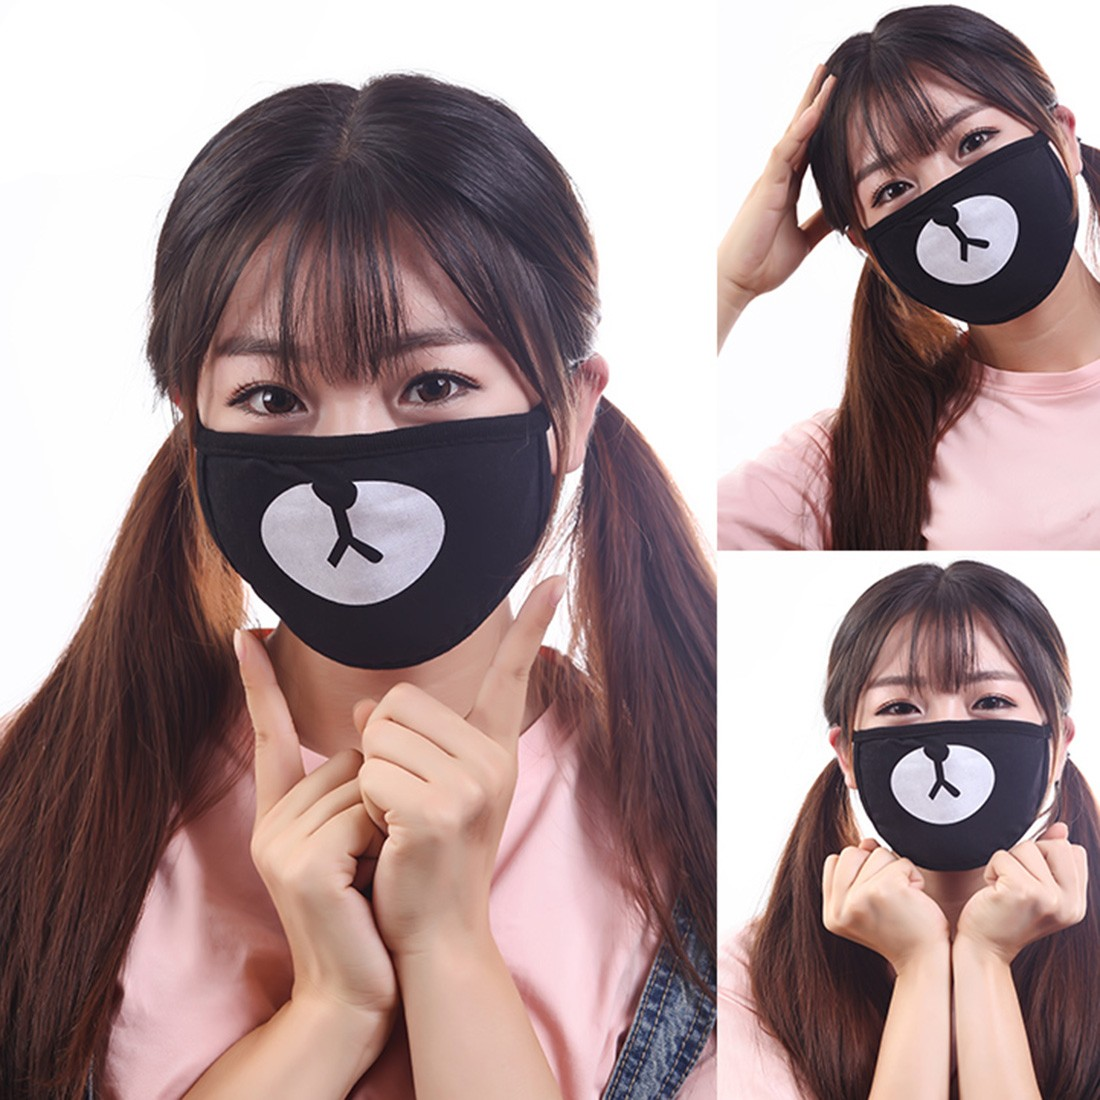 100% Quality Star Cotton Dustproof Mouth Face Mask Unisex Korean Style Kpop Black Cycling Anti-dust Cotton Facial Protective Cover Masks Rapid Heat Dissipation Women's Accessories Apparel Accessories